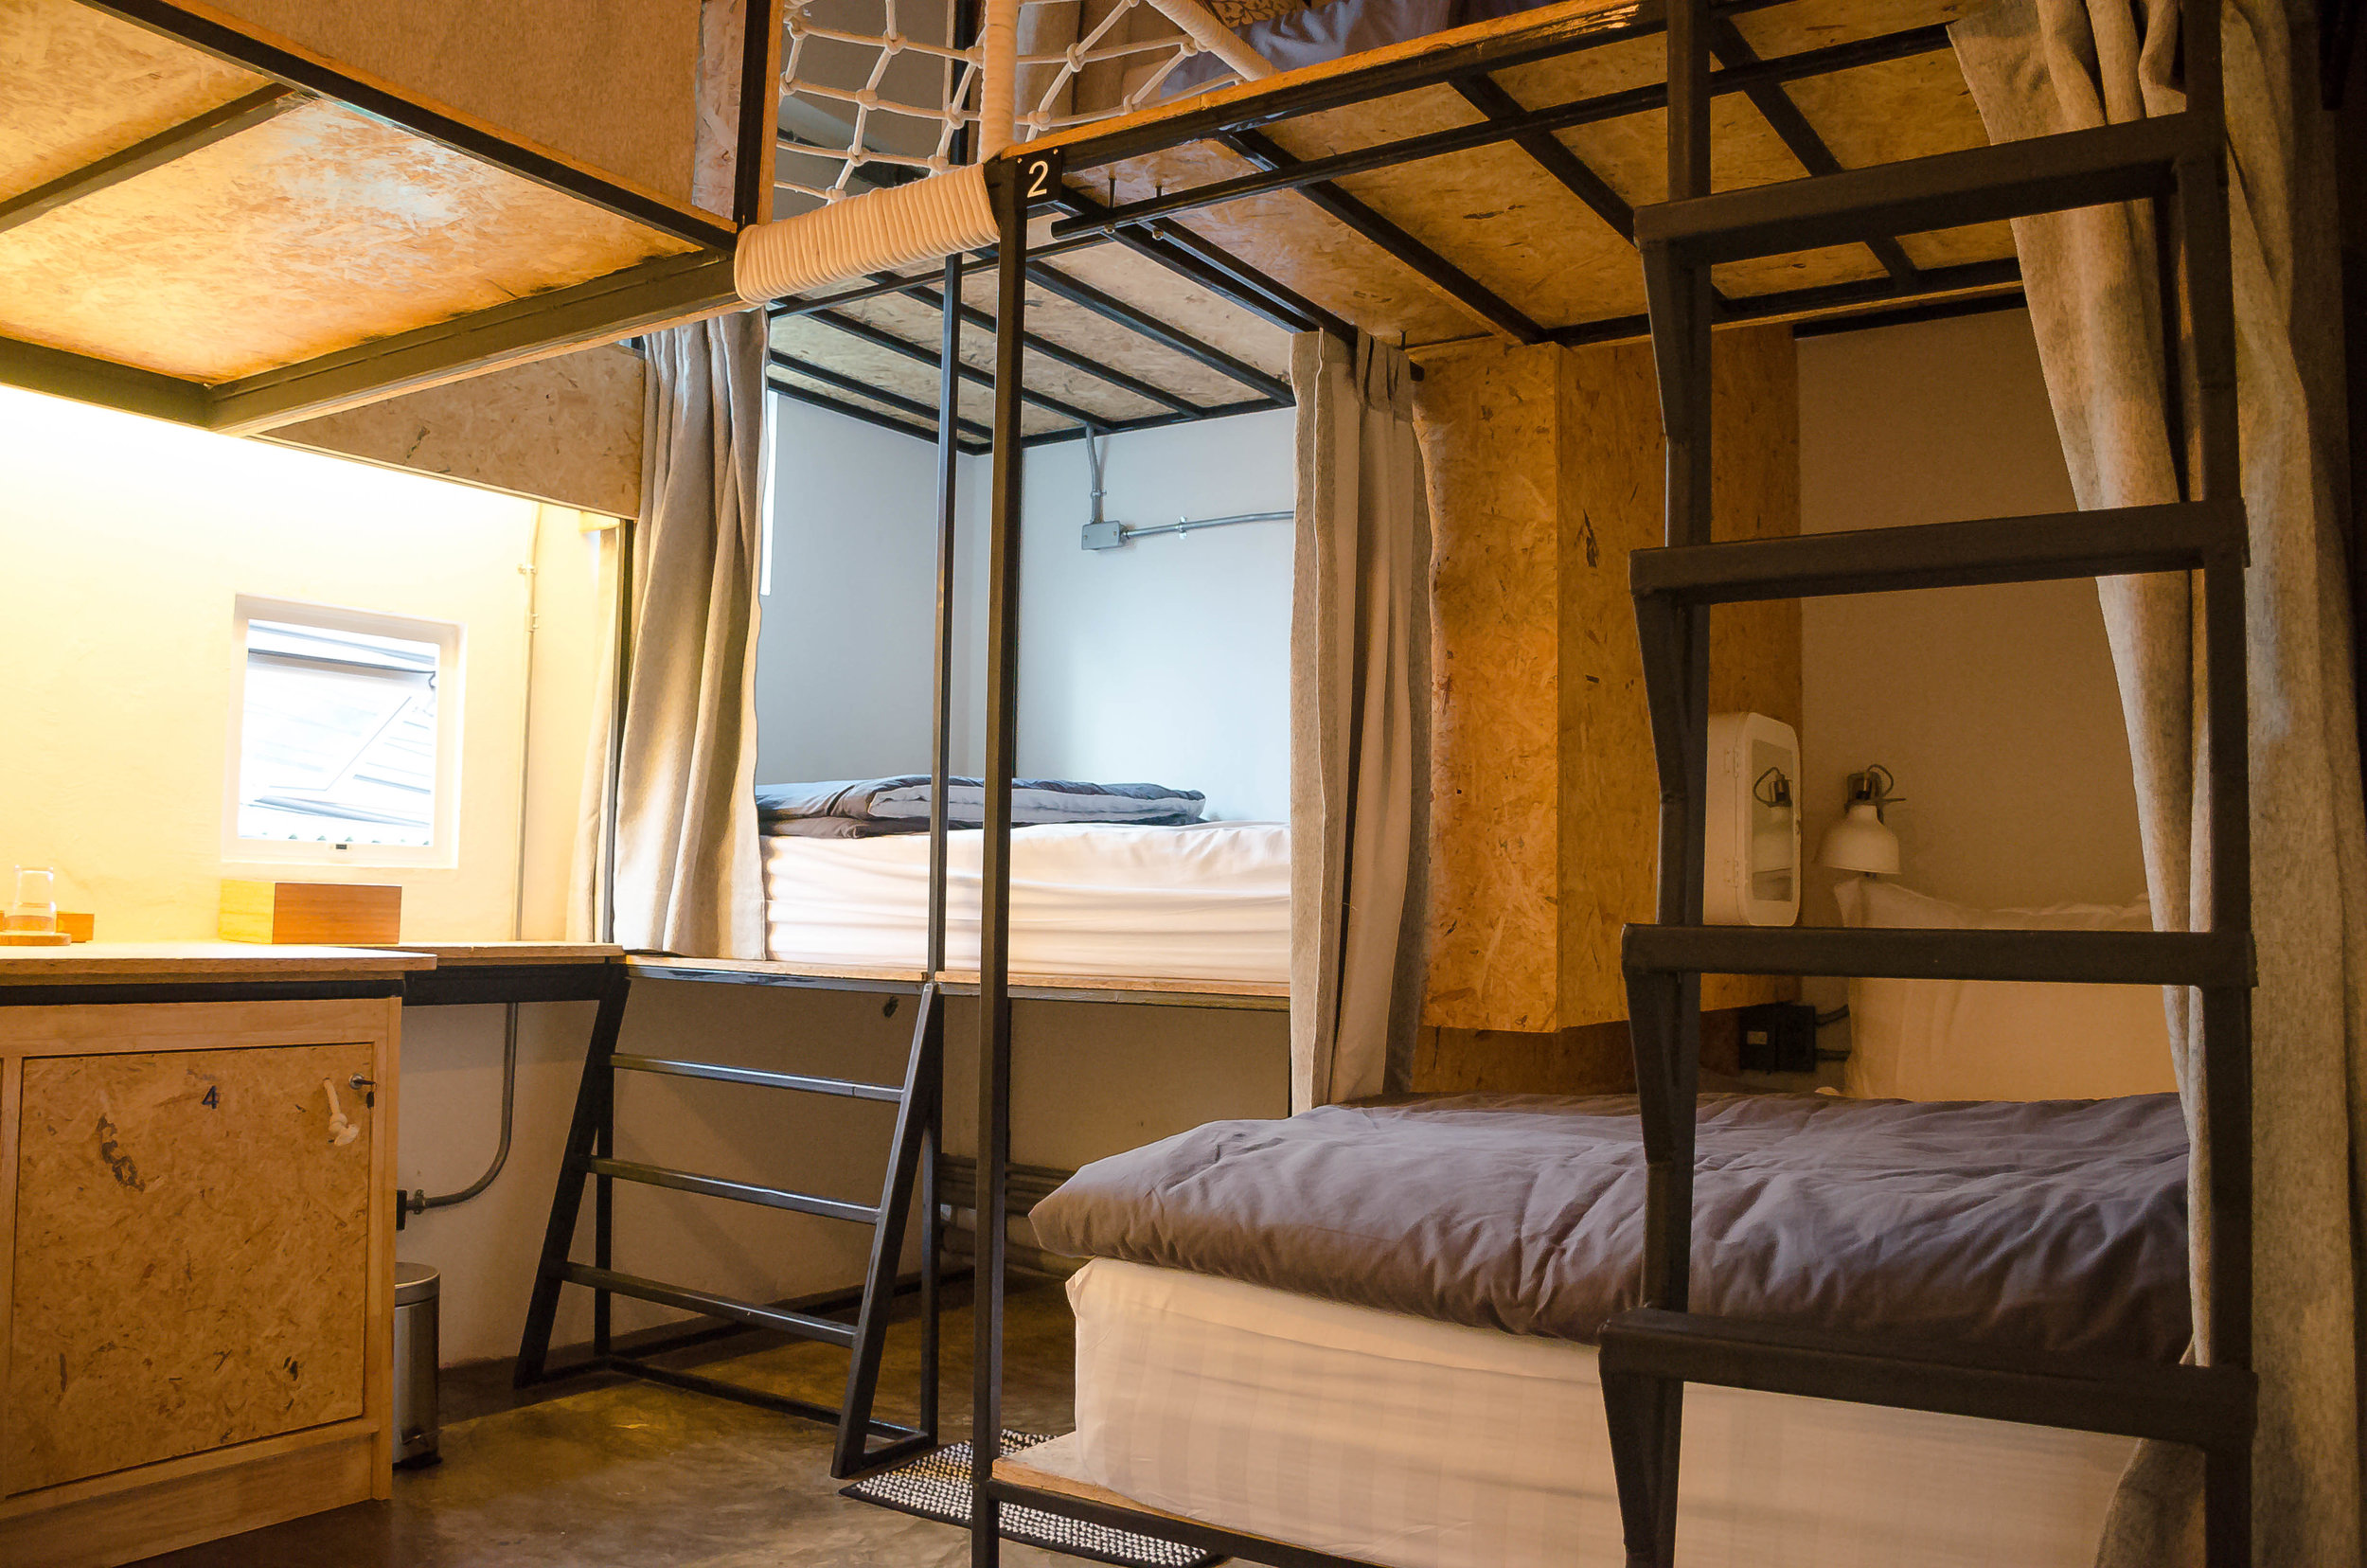 4-bed dormitory